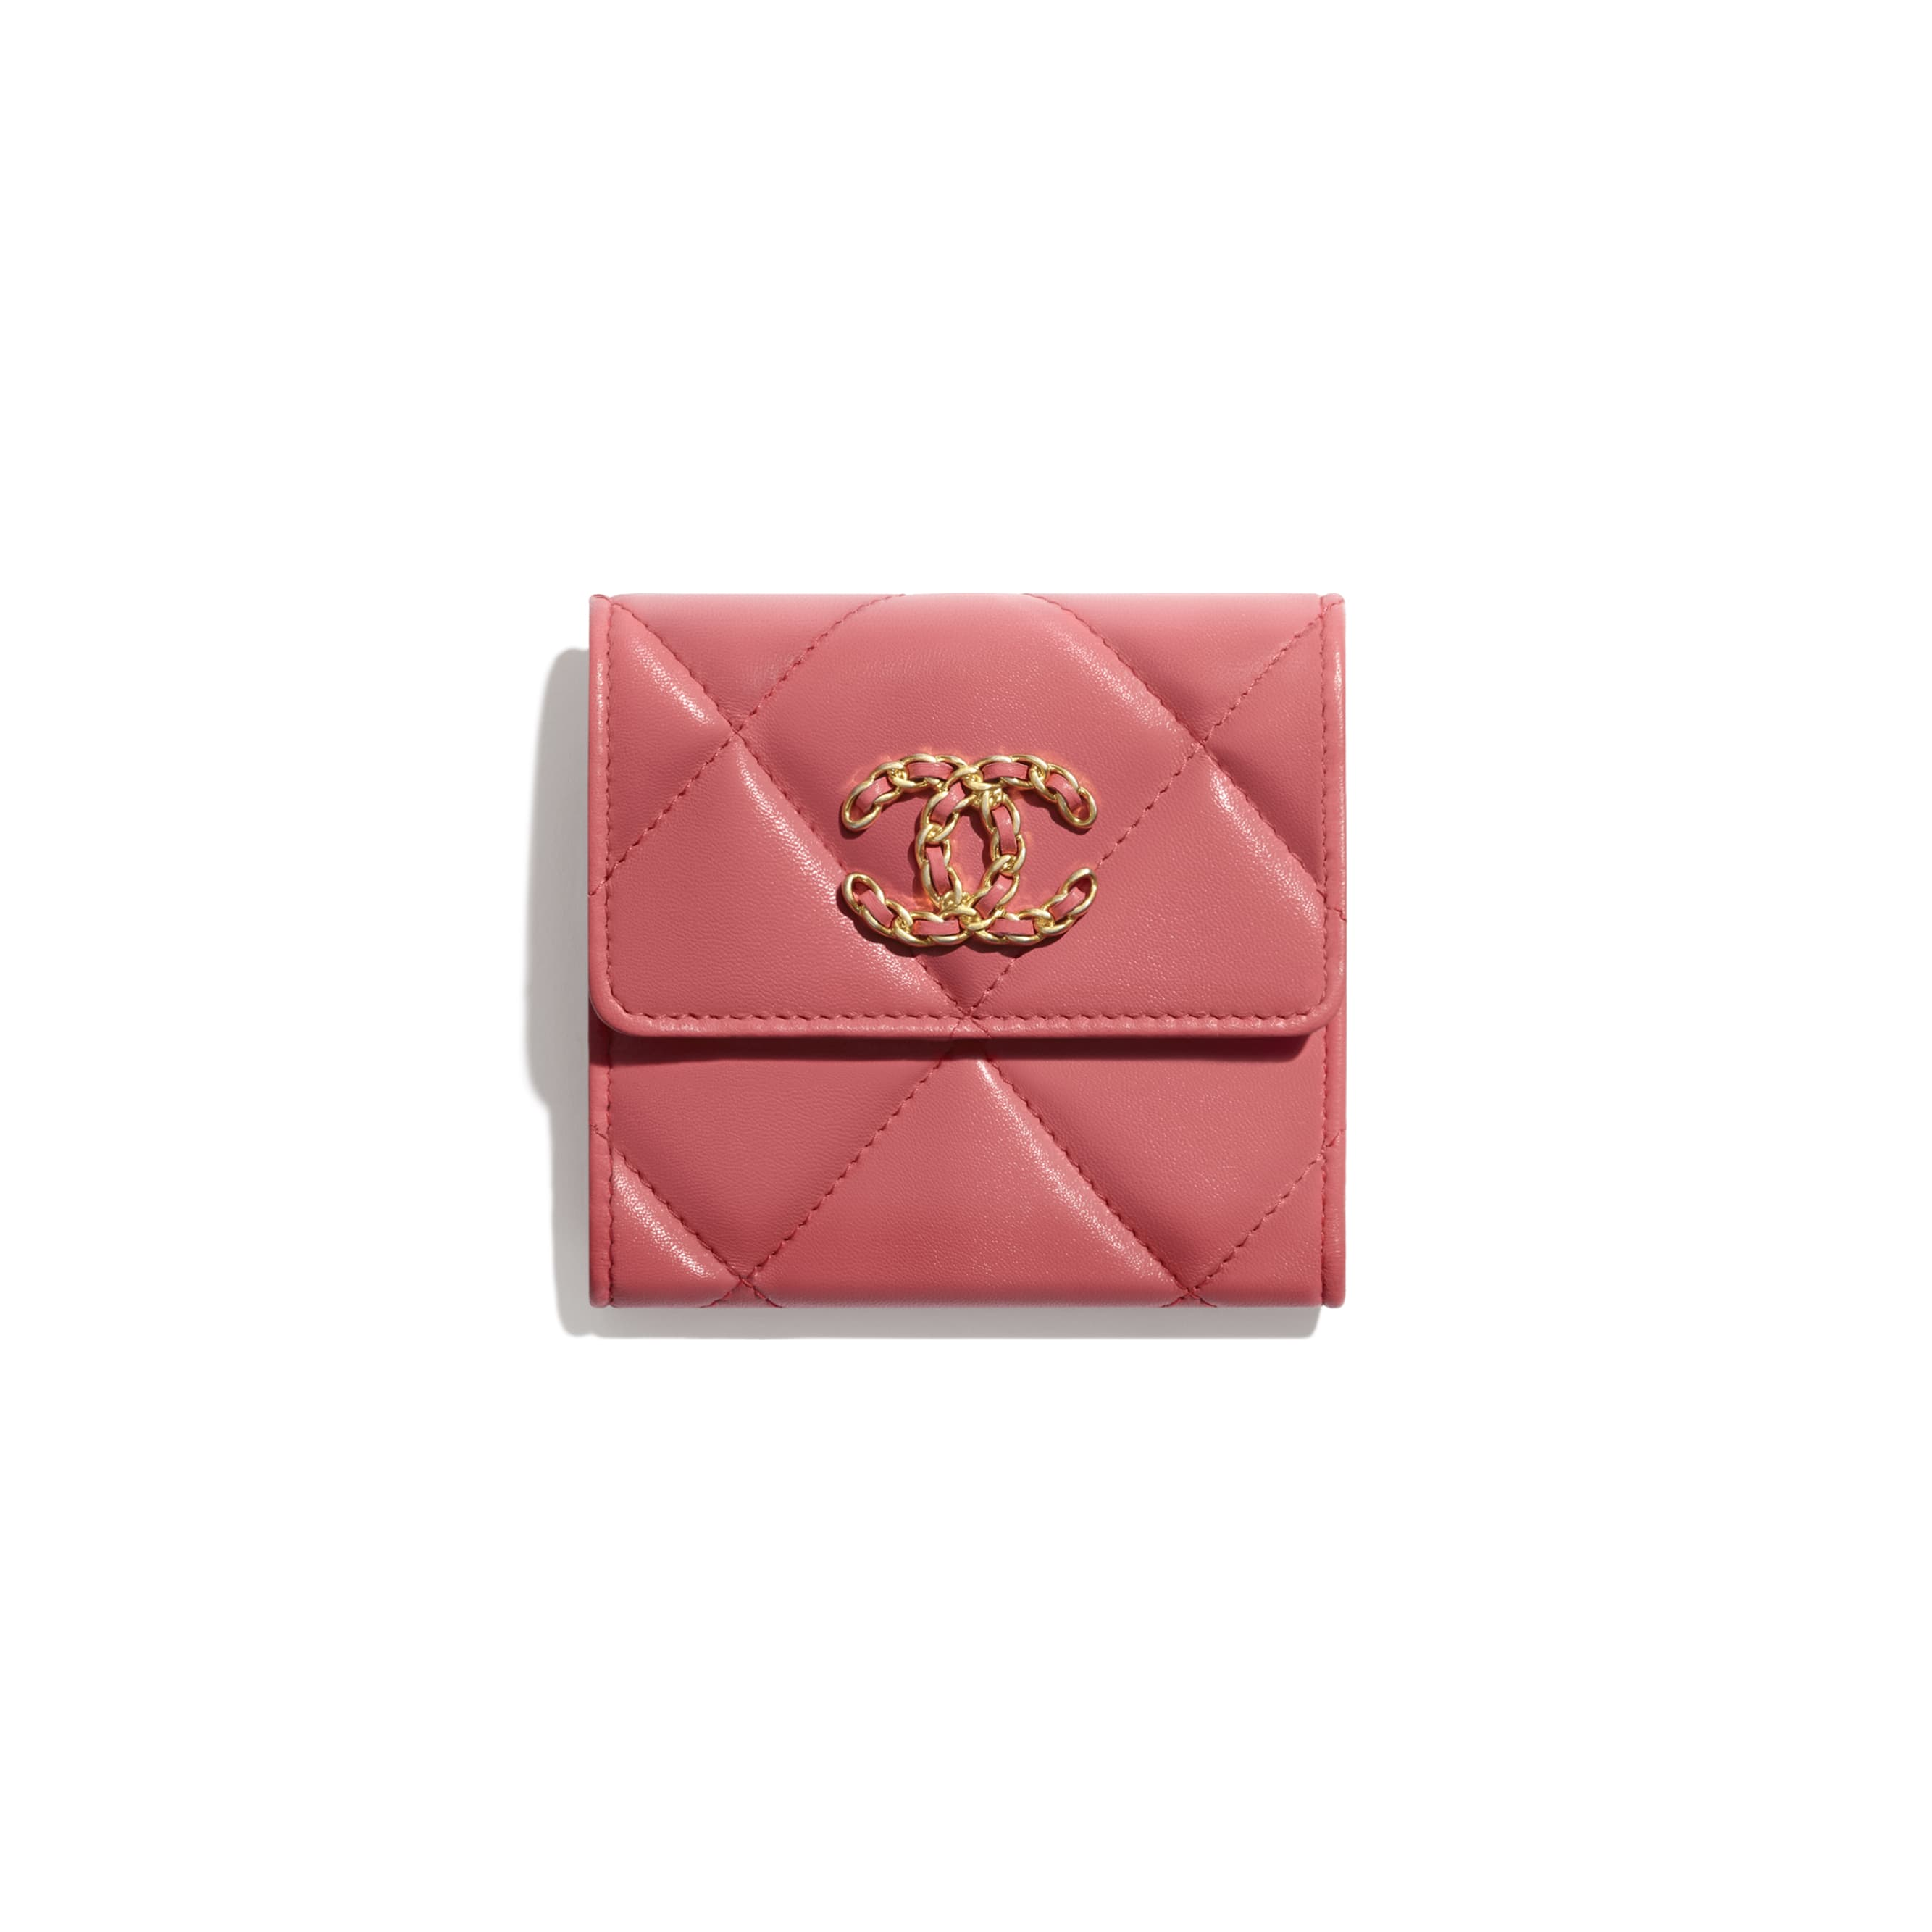 CHANEL 19 Small Flap Wallet - Coral - Lambskin, Gold-Tone, Silver-Tone & Ruthenium-Finish Metal - CHANEL - Default view - see standard sized version